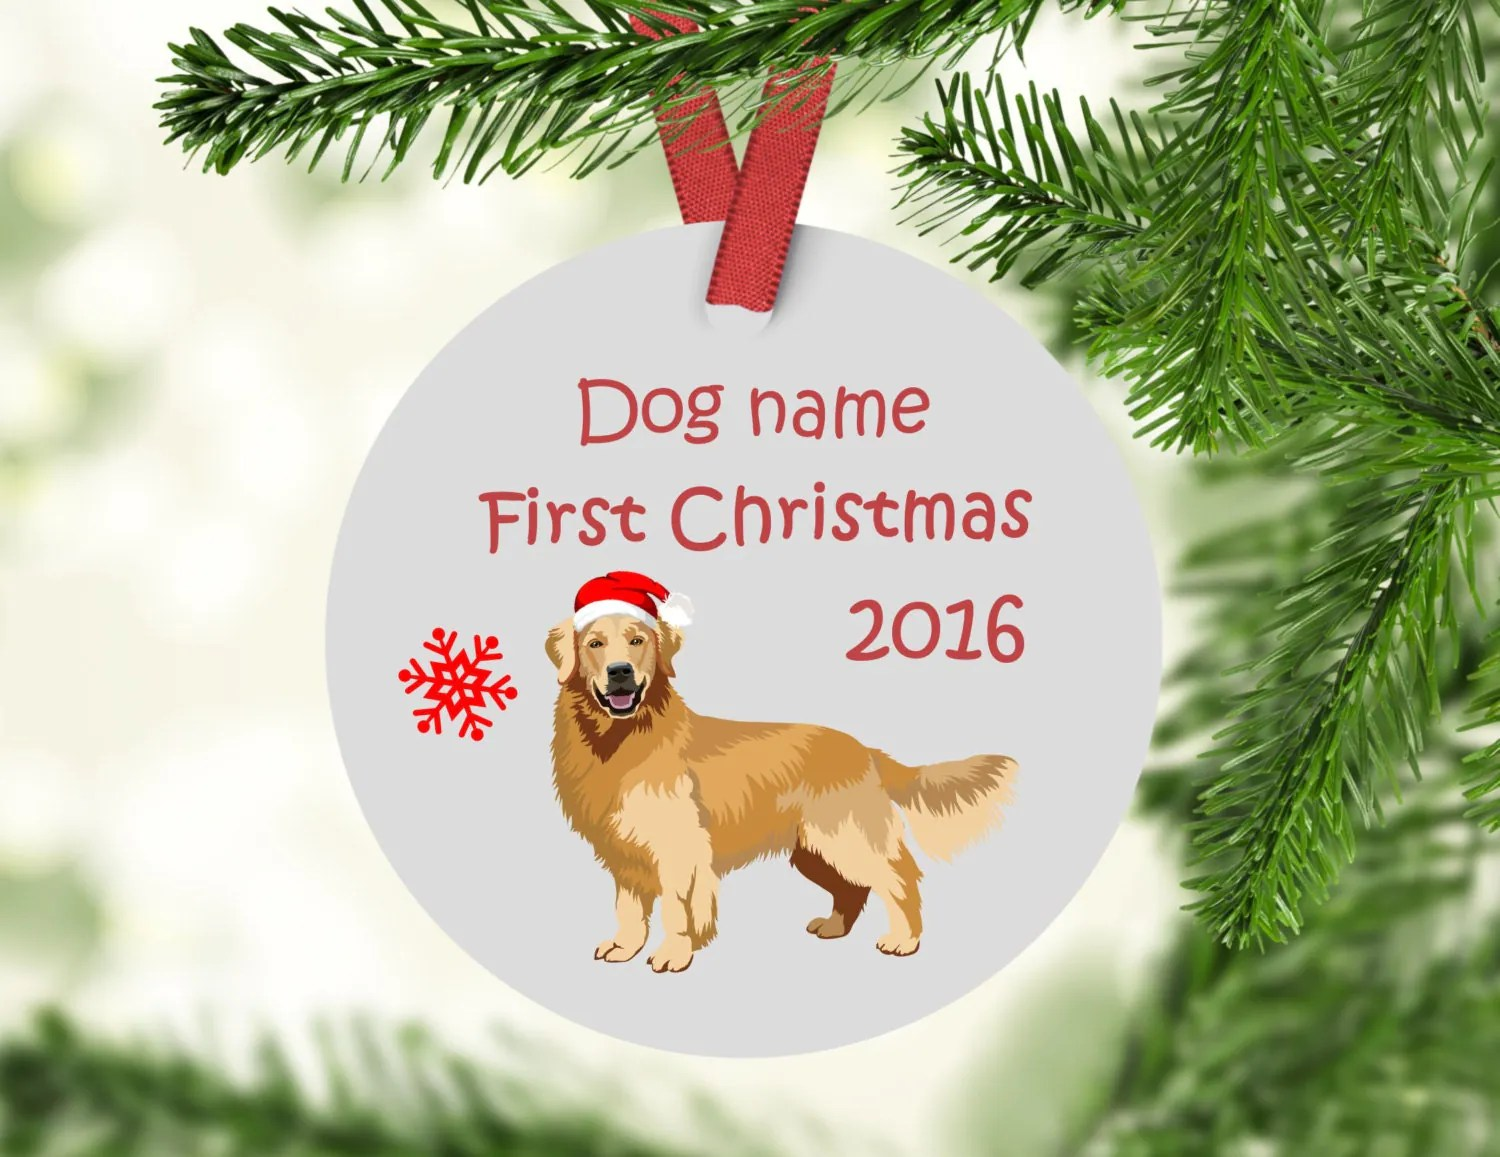 Glomorous Gen Retriever Ornament Personalized Dog Ornament Porcelain Retrievers Ornament Ceramic Gen Retriever Decorations Living Life One Gift At A Time decor Personalized Family Christmas Ornaments